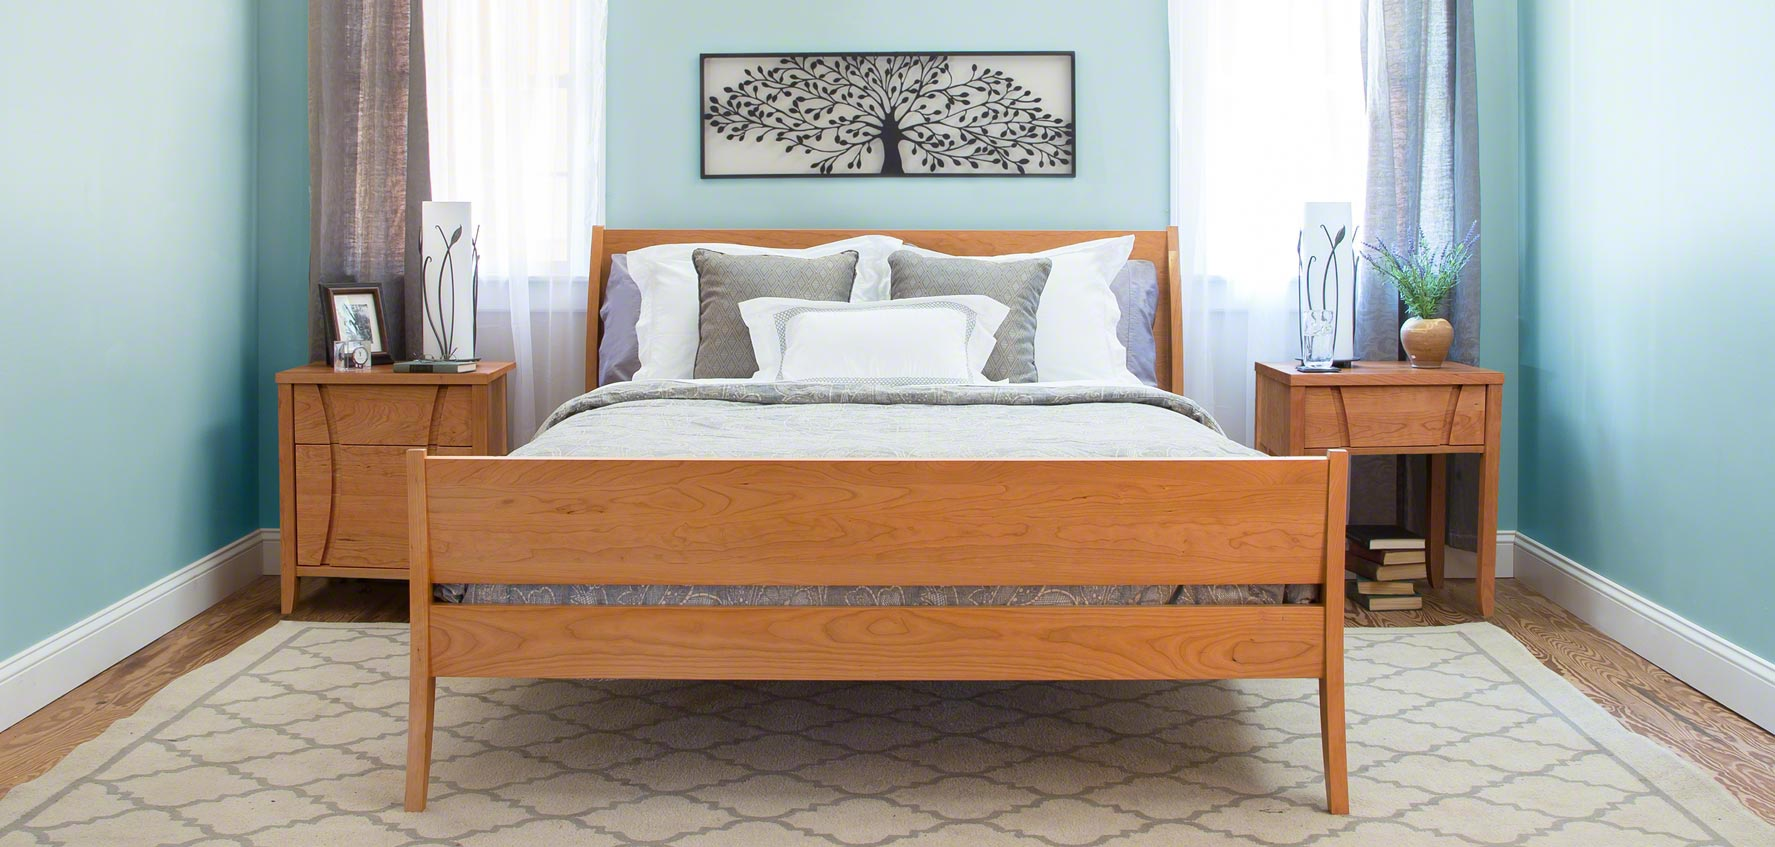 Möbel In Holland Holland Bedroom Furniture Collection - Vermont Woods Studios